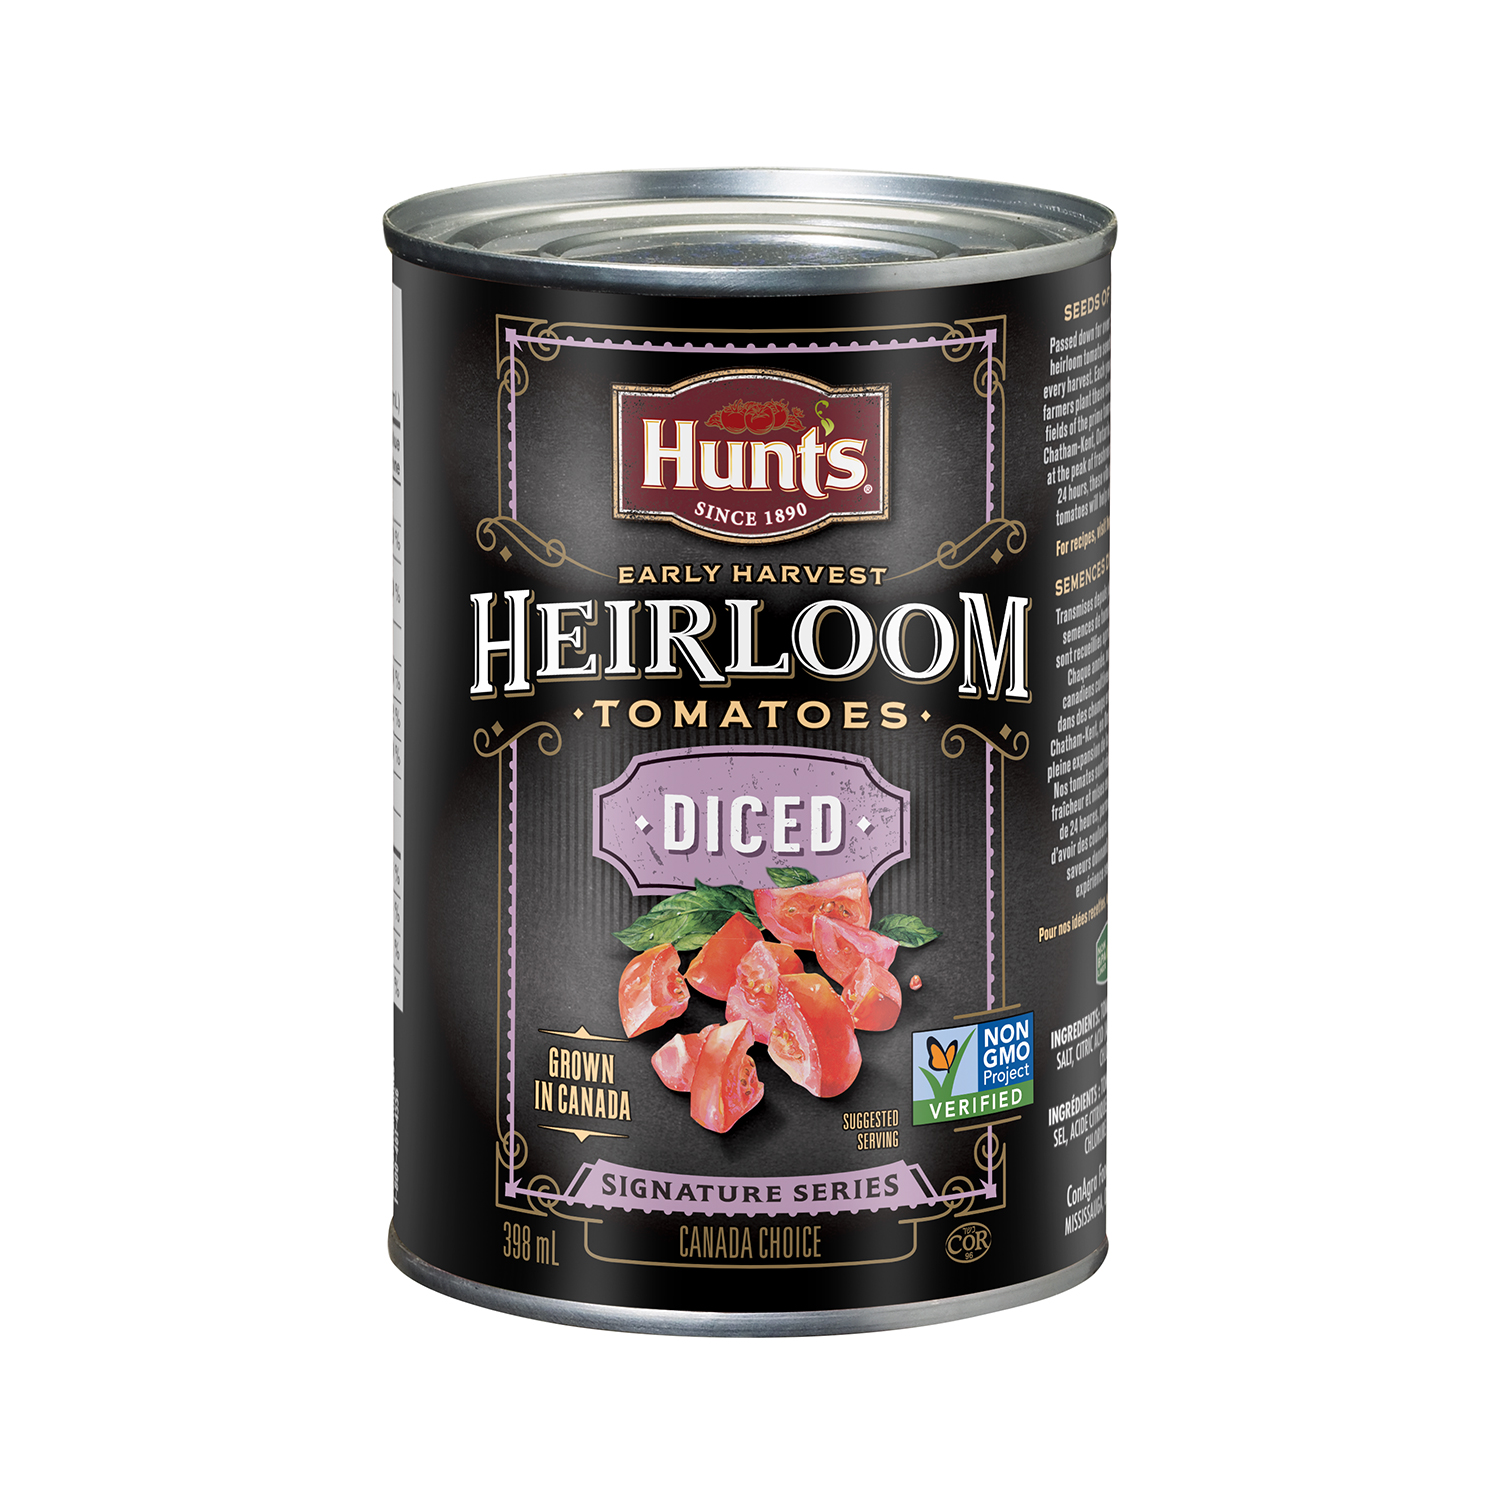 Heirloom Diced Tomatoes